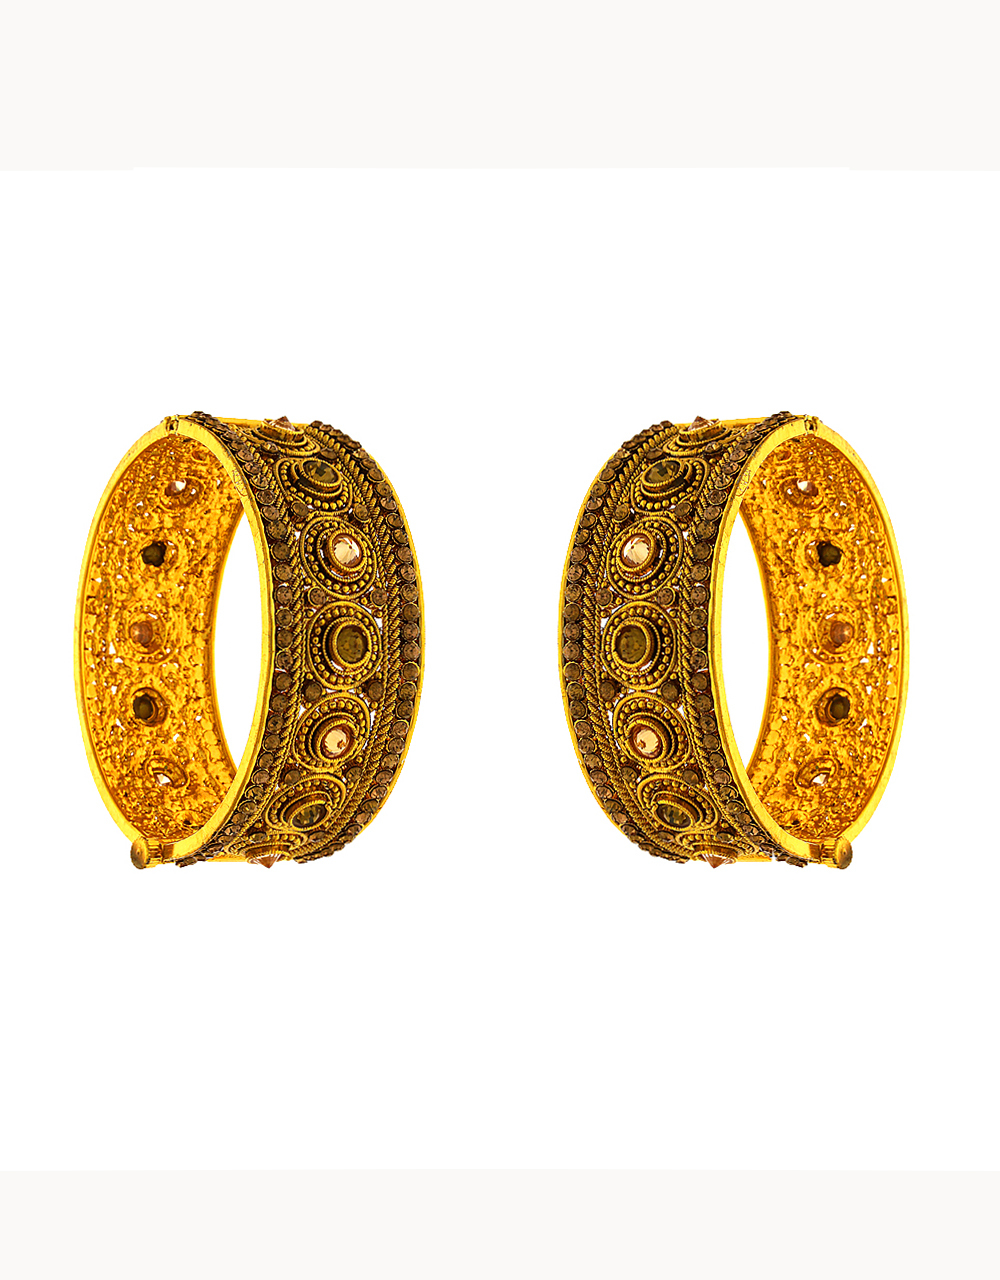 Adorable Heavy Bangles For Wedding Studded With Stones Imitation Bangles